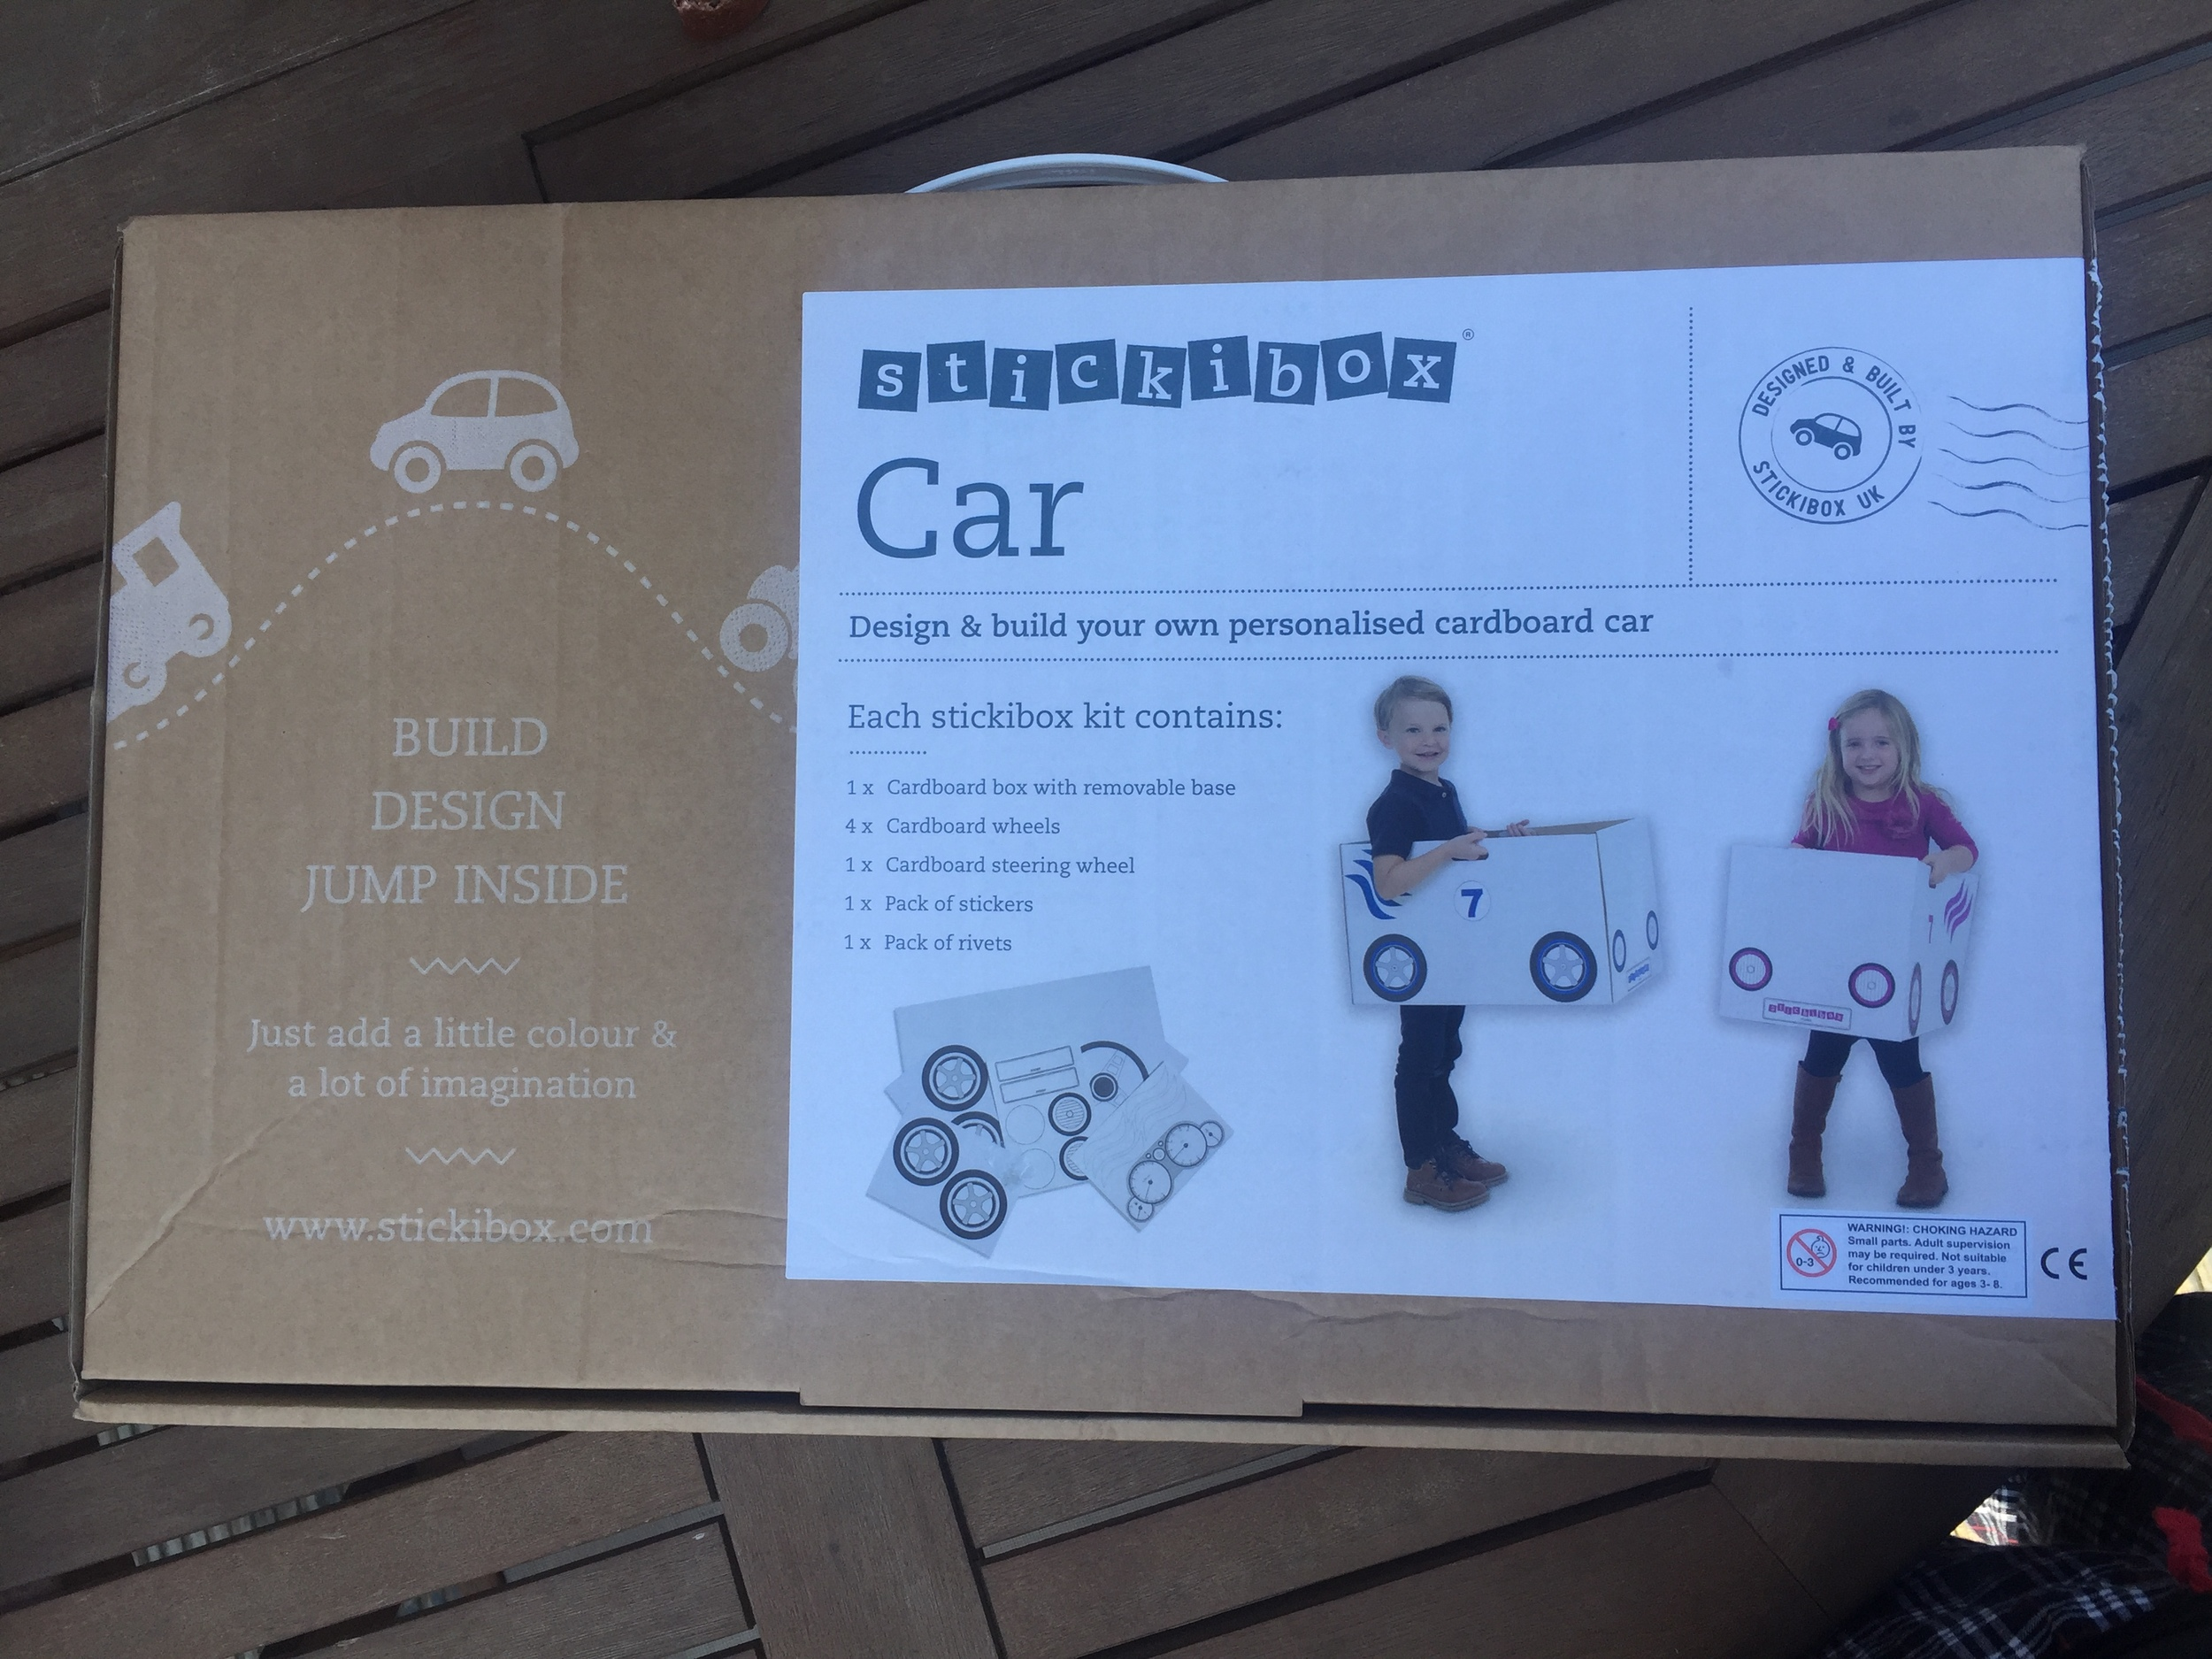 Stickibox was founded by two mums, Pip & Kerry, who were inspired after watching their children create a car our of an empty cardboard box. And,Stickibox was born. All of Stickibox products are made in the UK and each kit is made from recycled material which can be recycled again after use.